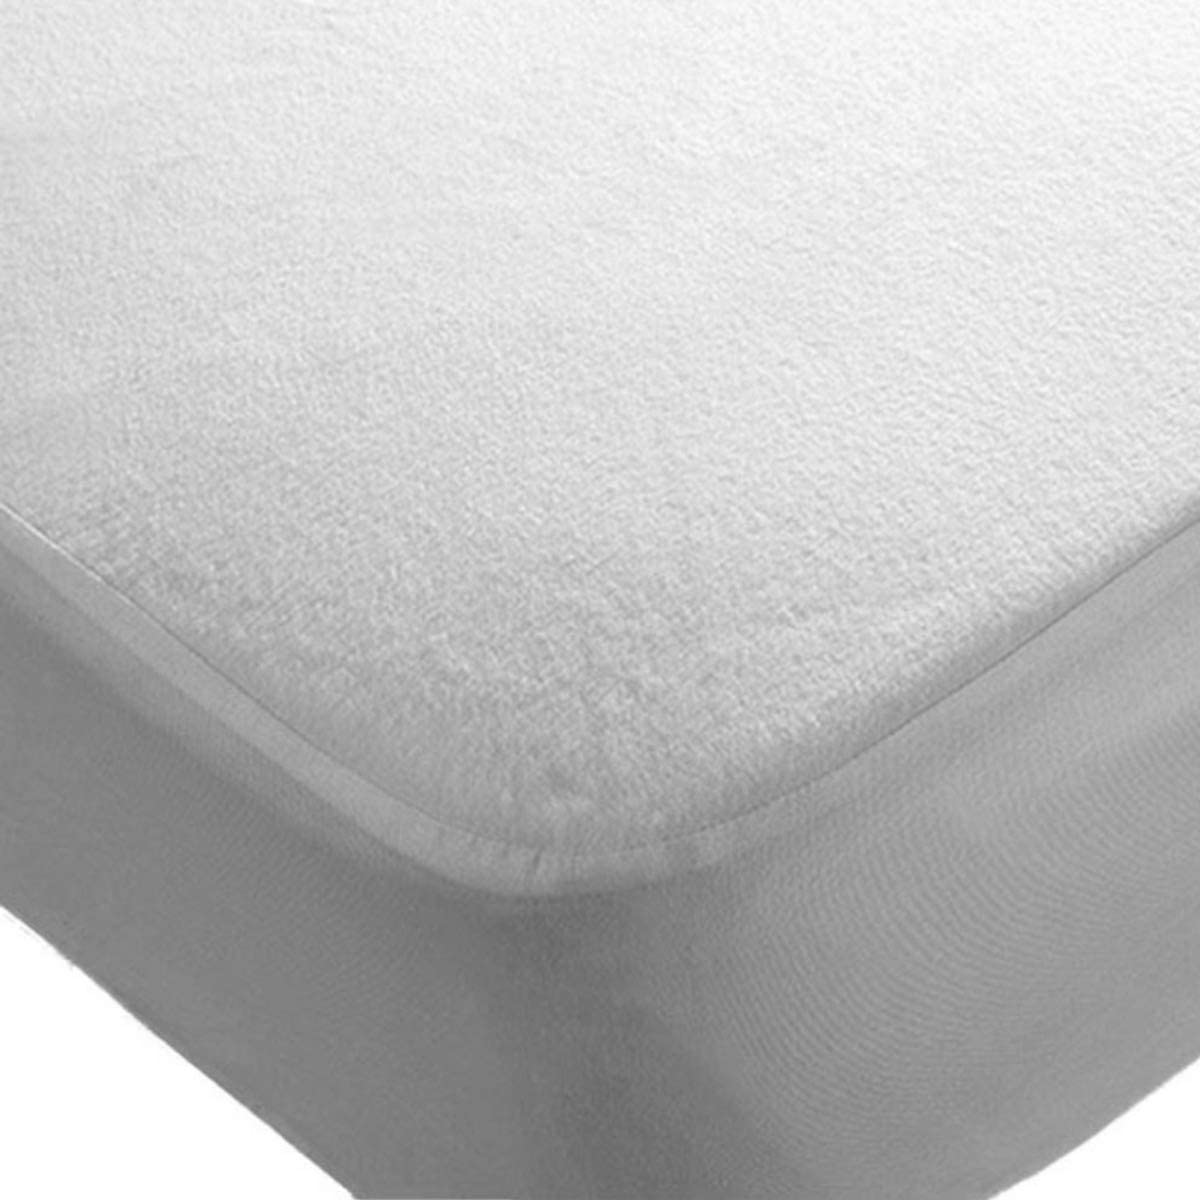 FYLO 4X Cot Bed 140 x 70 cm Waterproof Mattress Protector Fitted Sheets